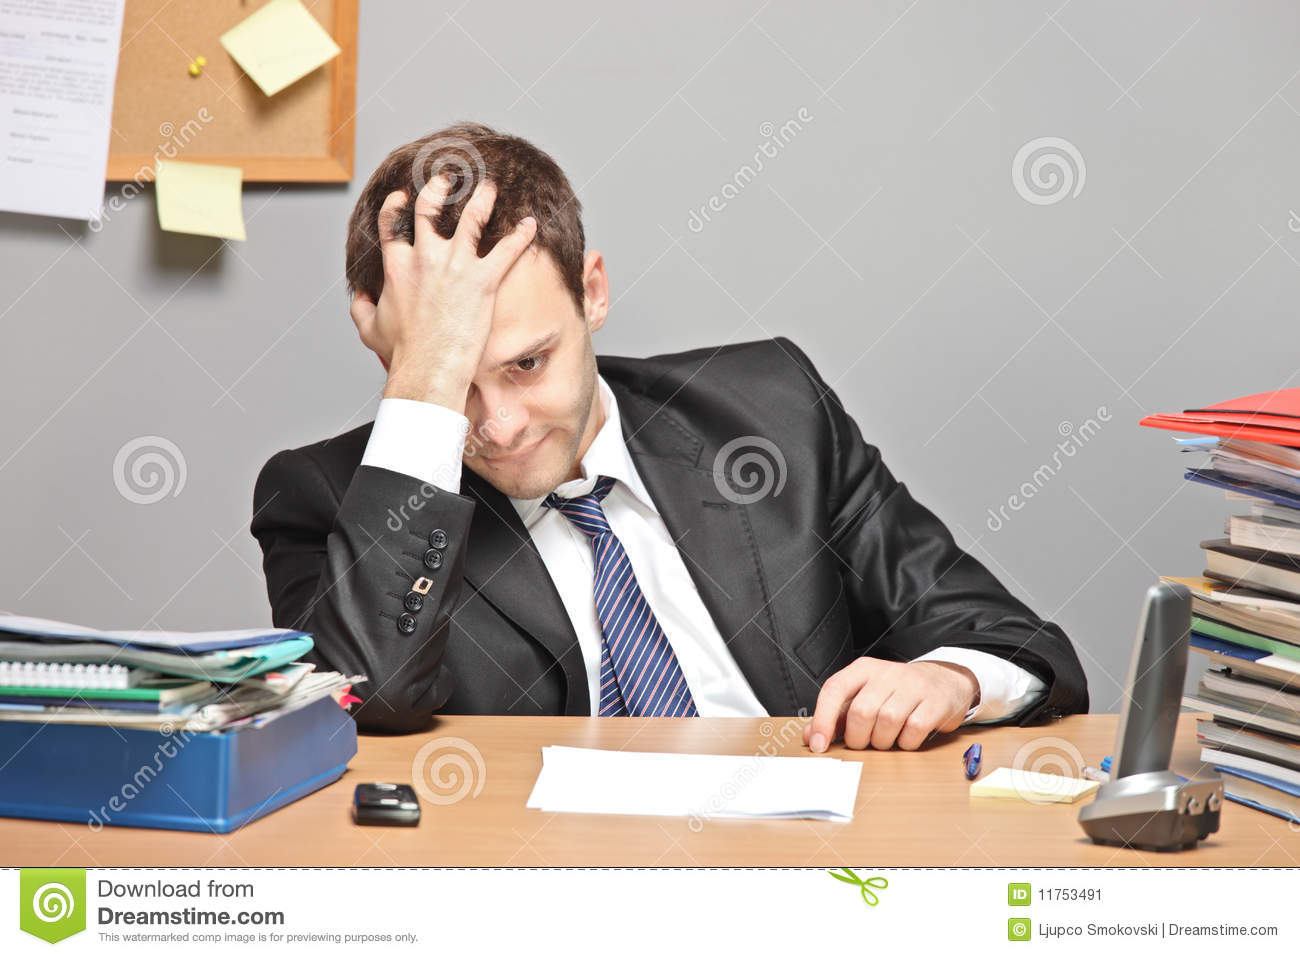 Sad Worker Stock Image - Image: 11753491